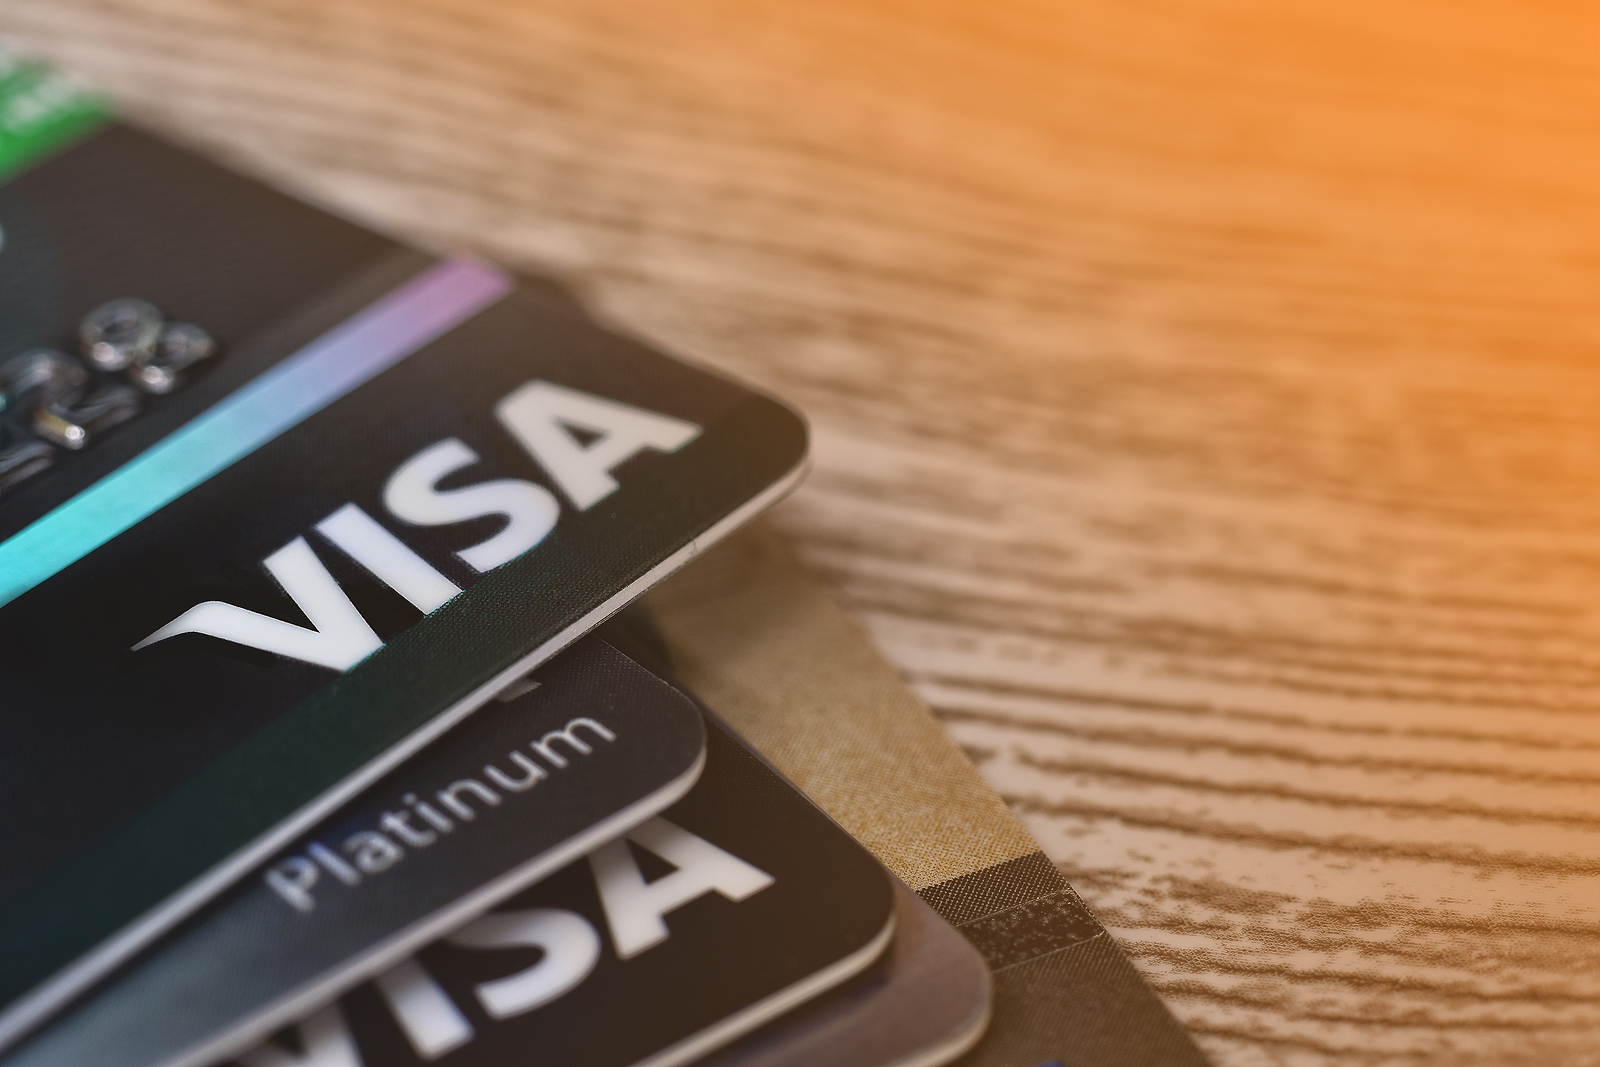 Visa V stock news and analysis